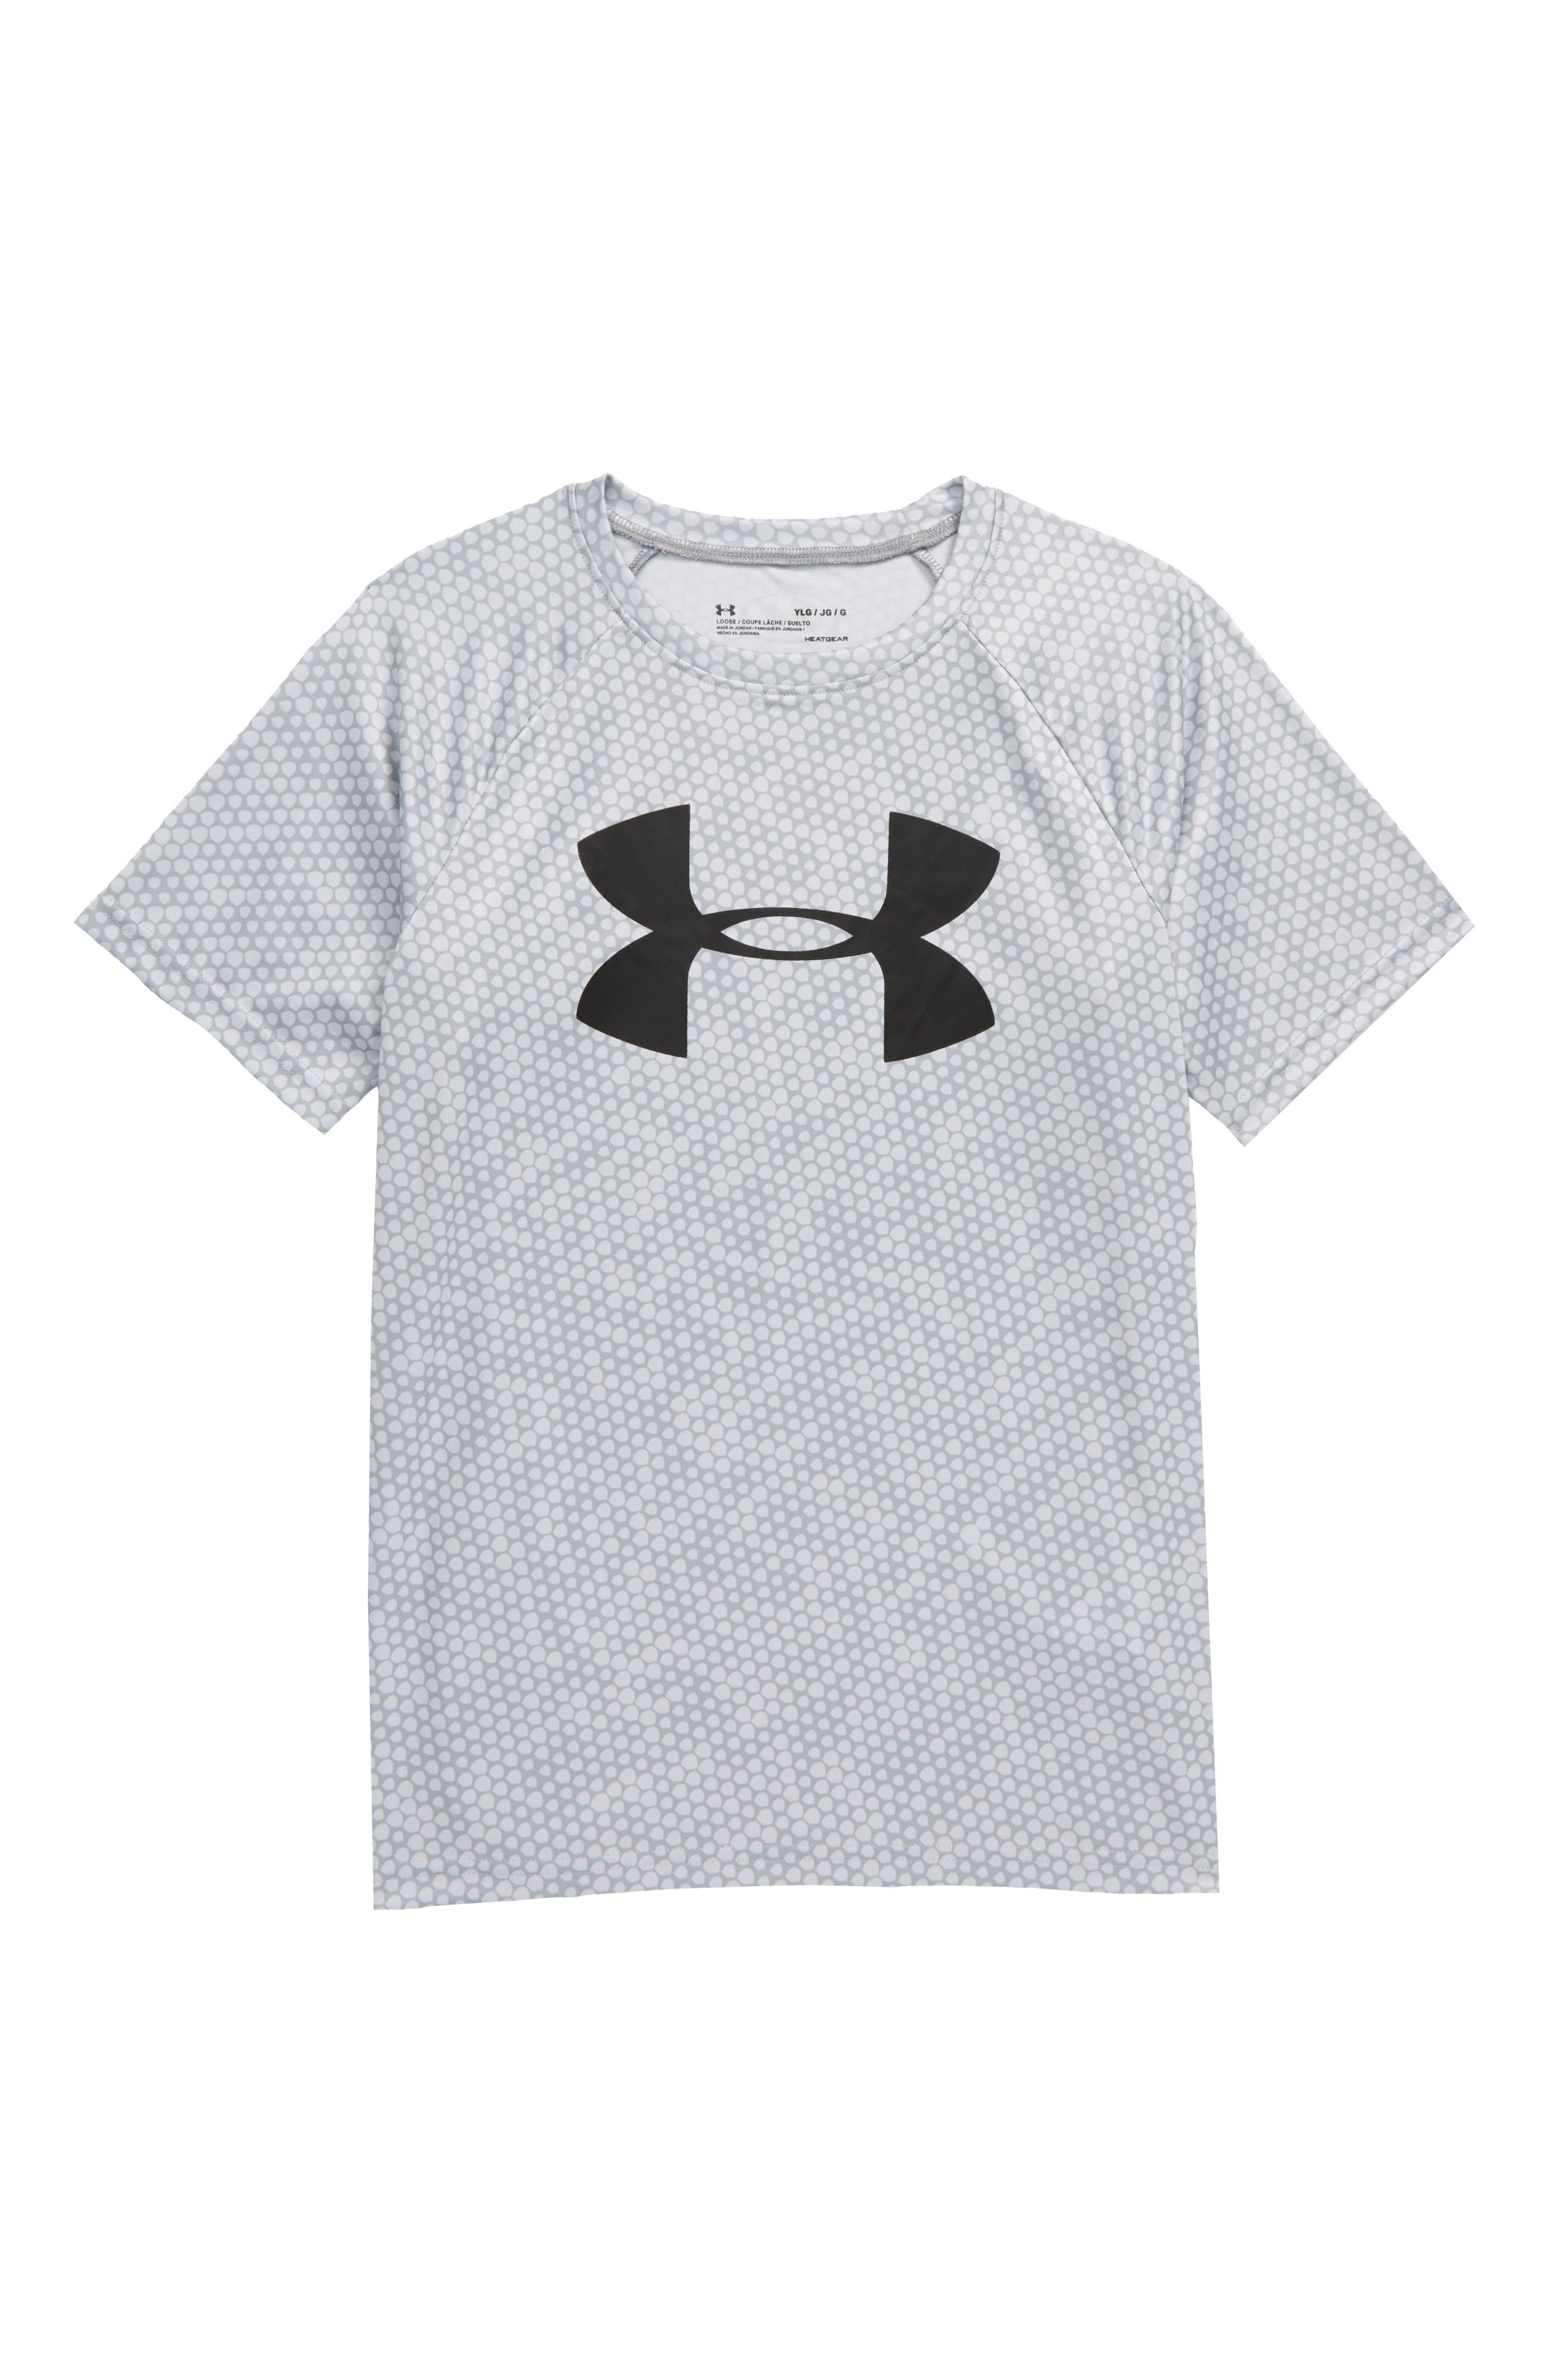 Image of Under Armour Big Logo Printed T-Shirt